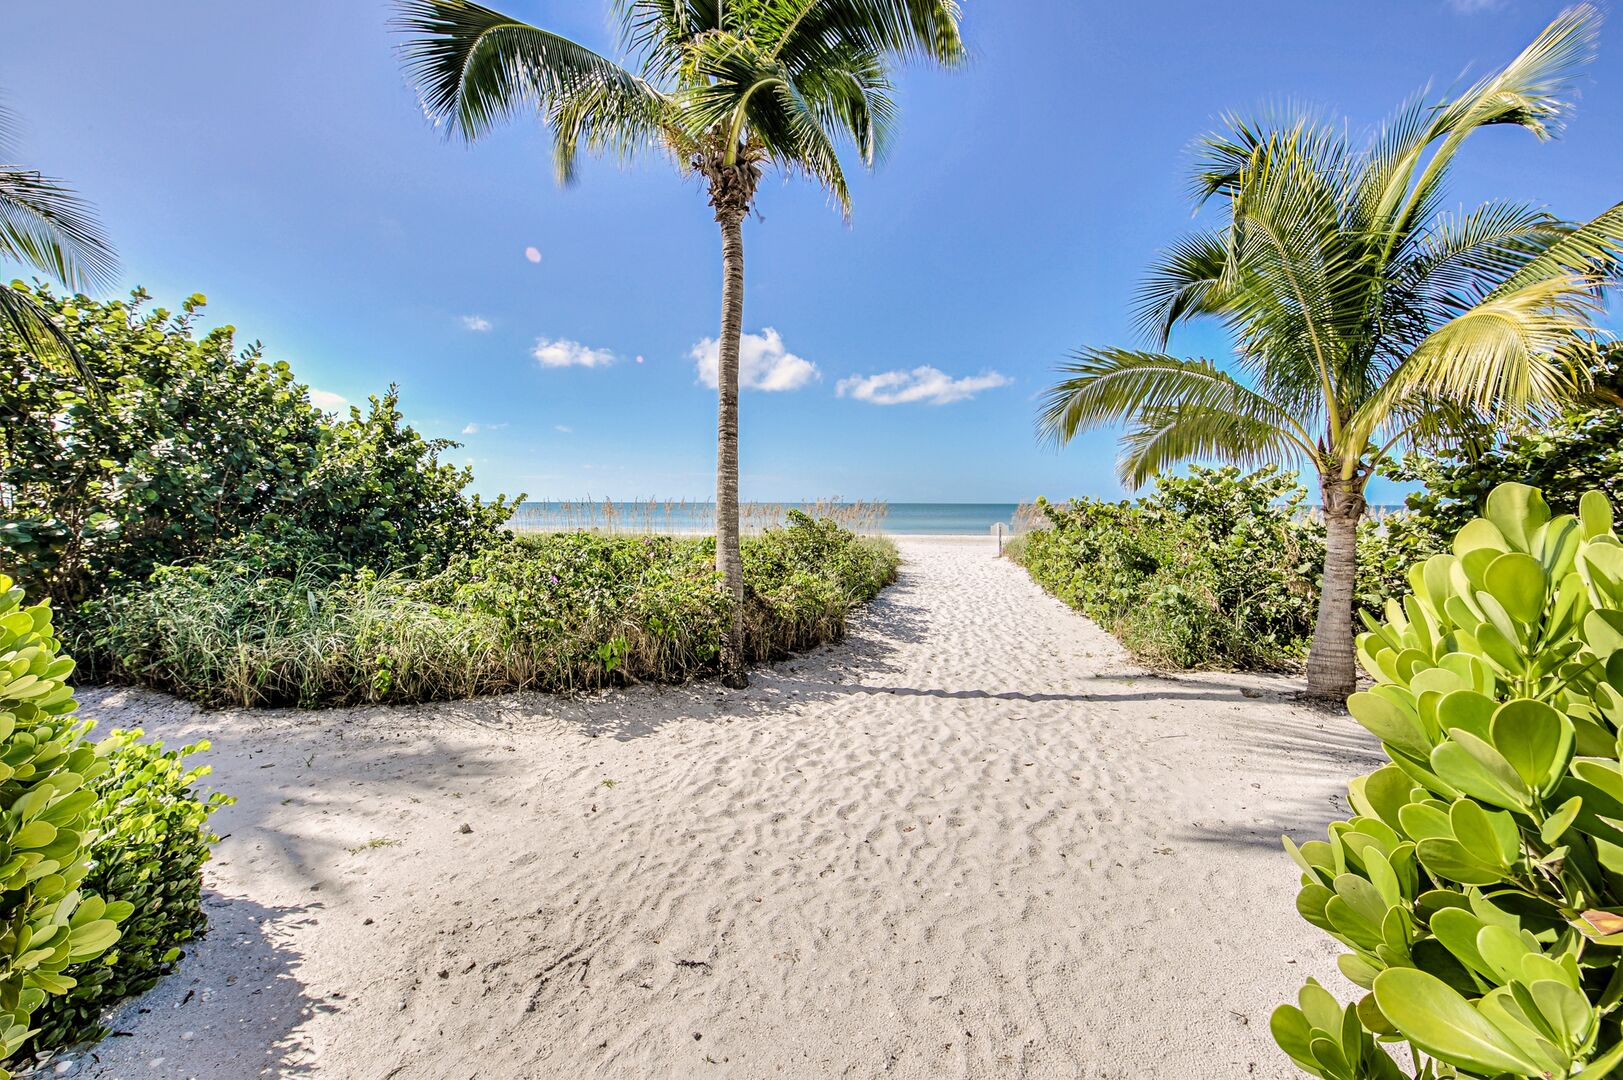 Beautiful Sandy Path to the Beach with Palm Trees.